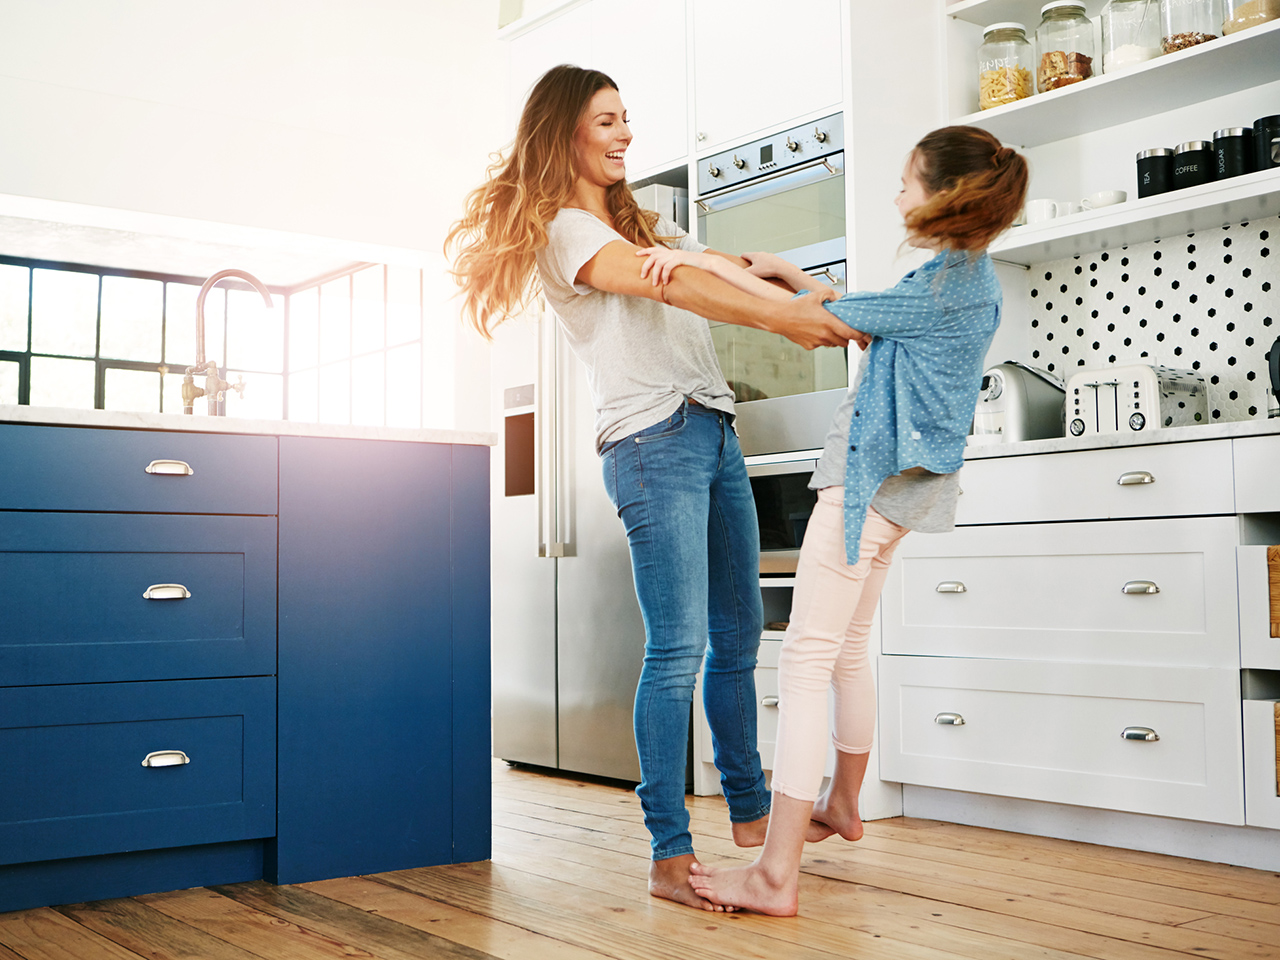 a happy mother and her daughter playfully dancing together at home